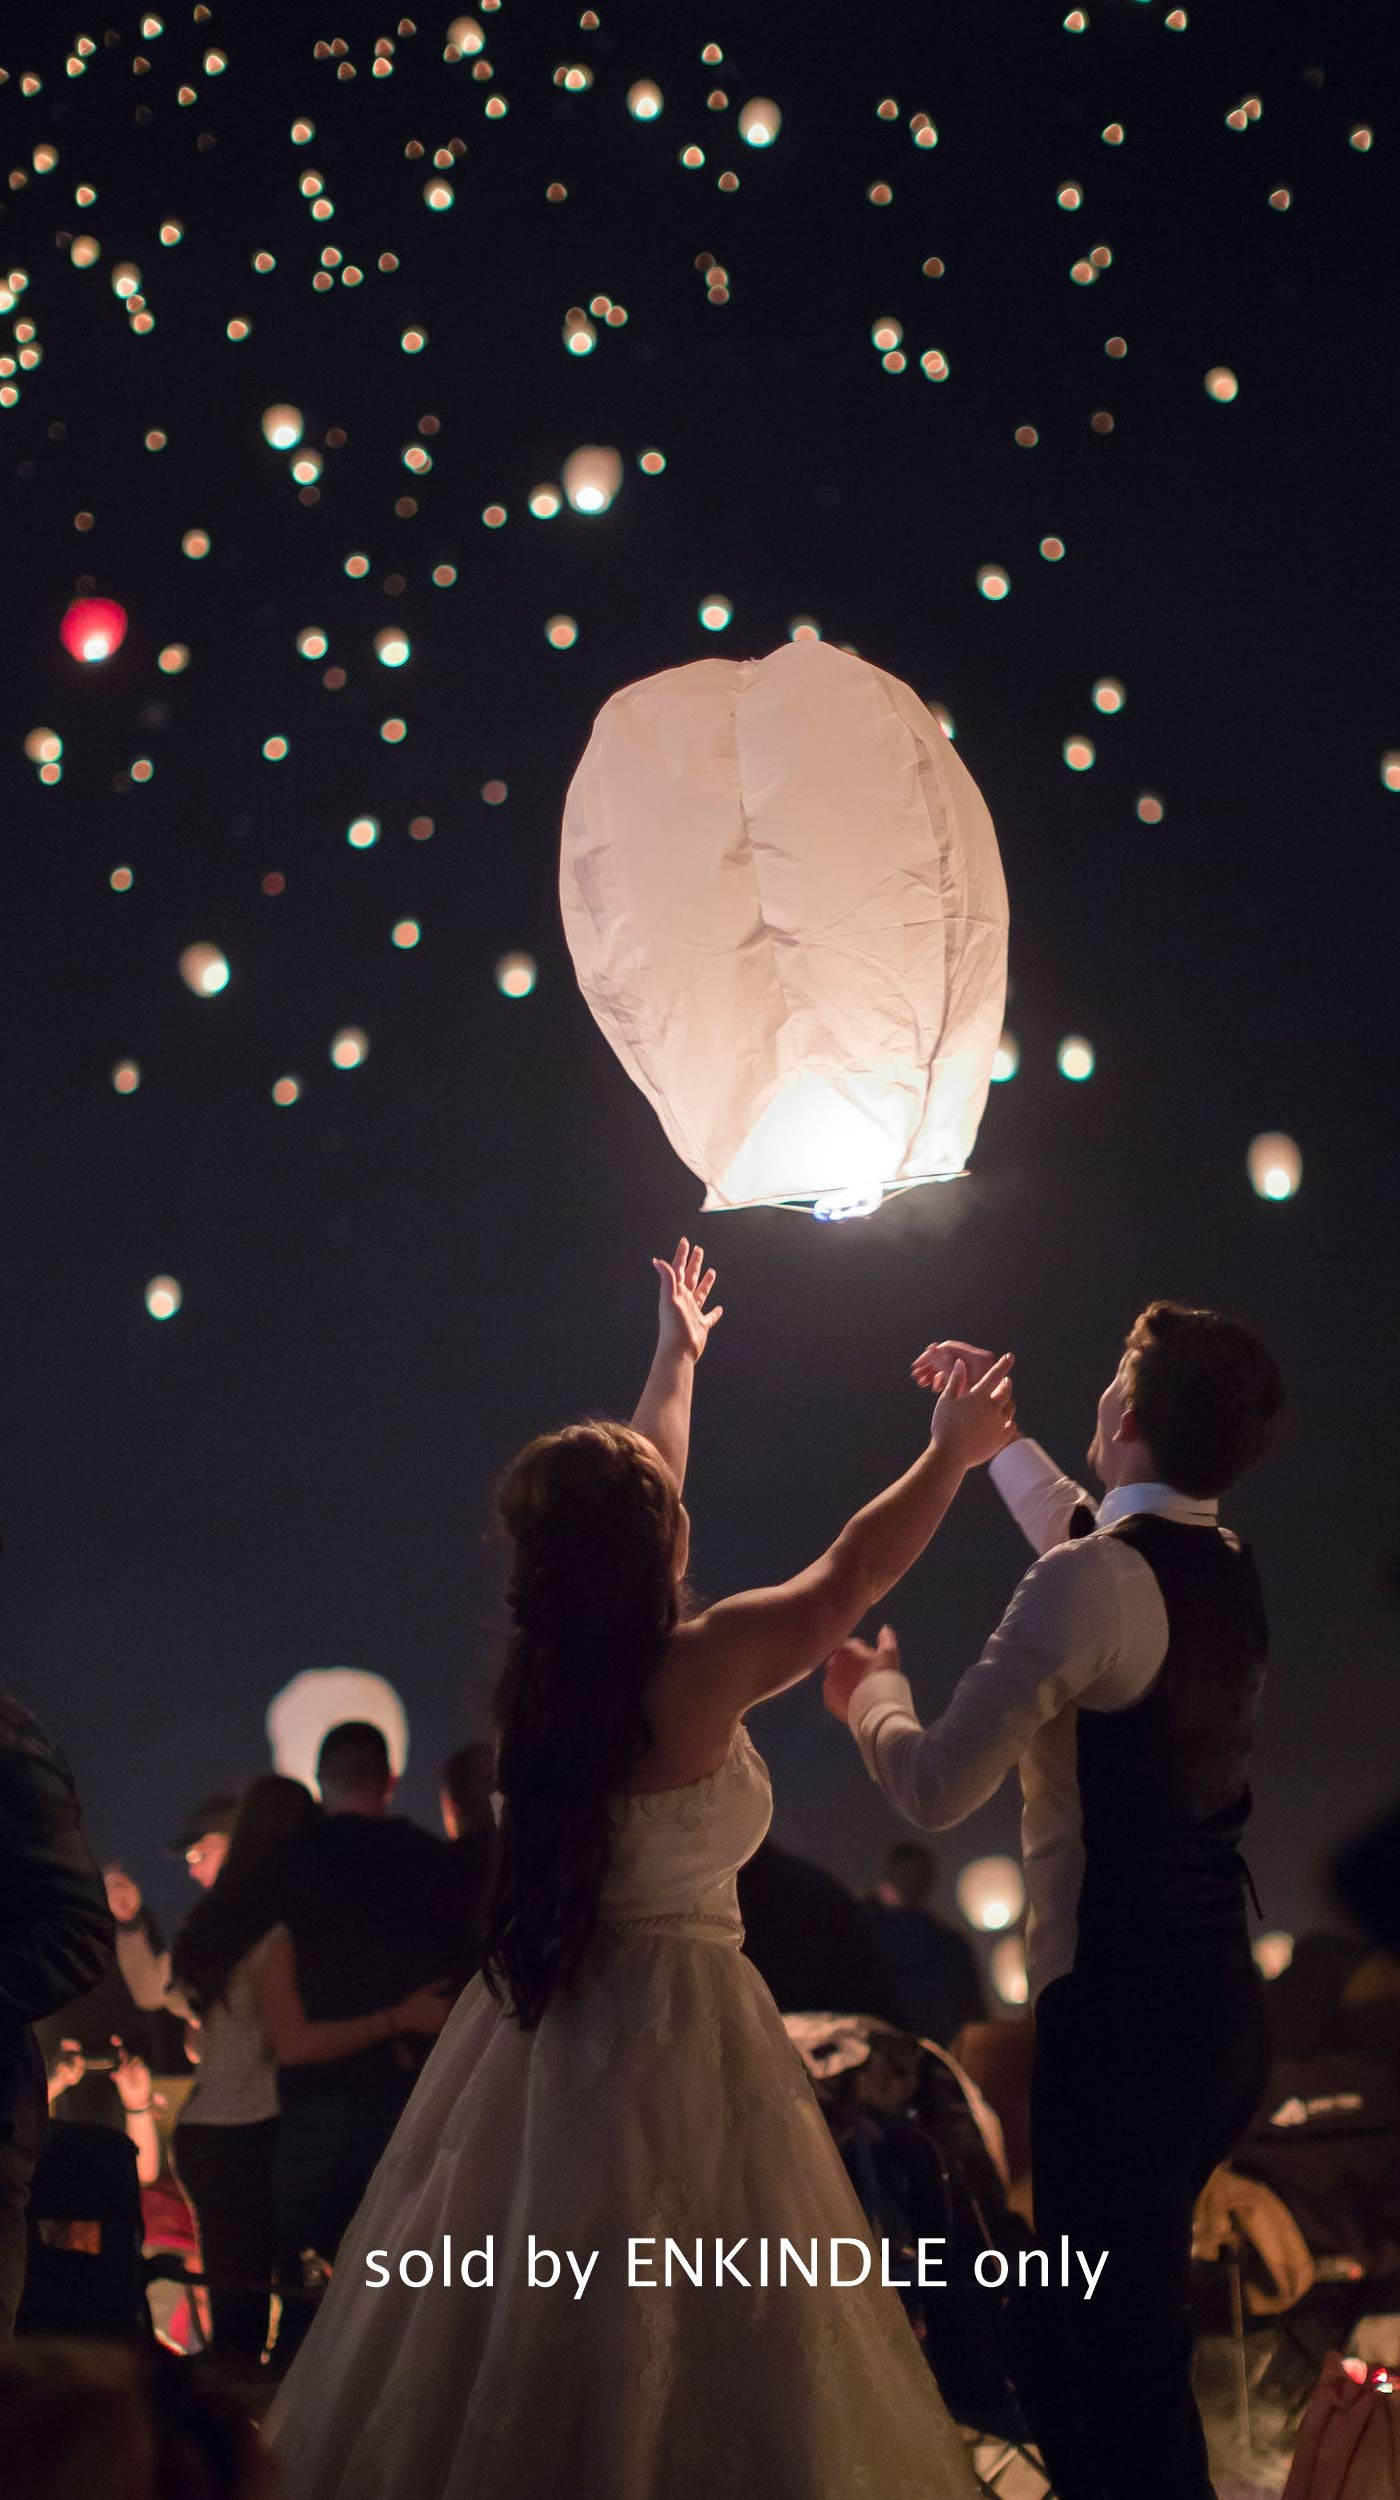 Chinese Paper Flying Sky Lanterns - for Wedding, Christmas, Memorial, Party Wish - Large White Eco Friendly 100% Biodegradable 10 Pack Lantern Set with Small Japanese Wax Paper Easy to Light (Diamond)